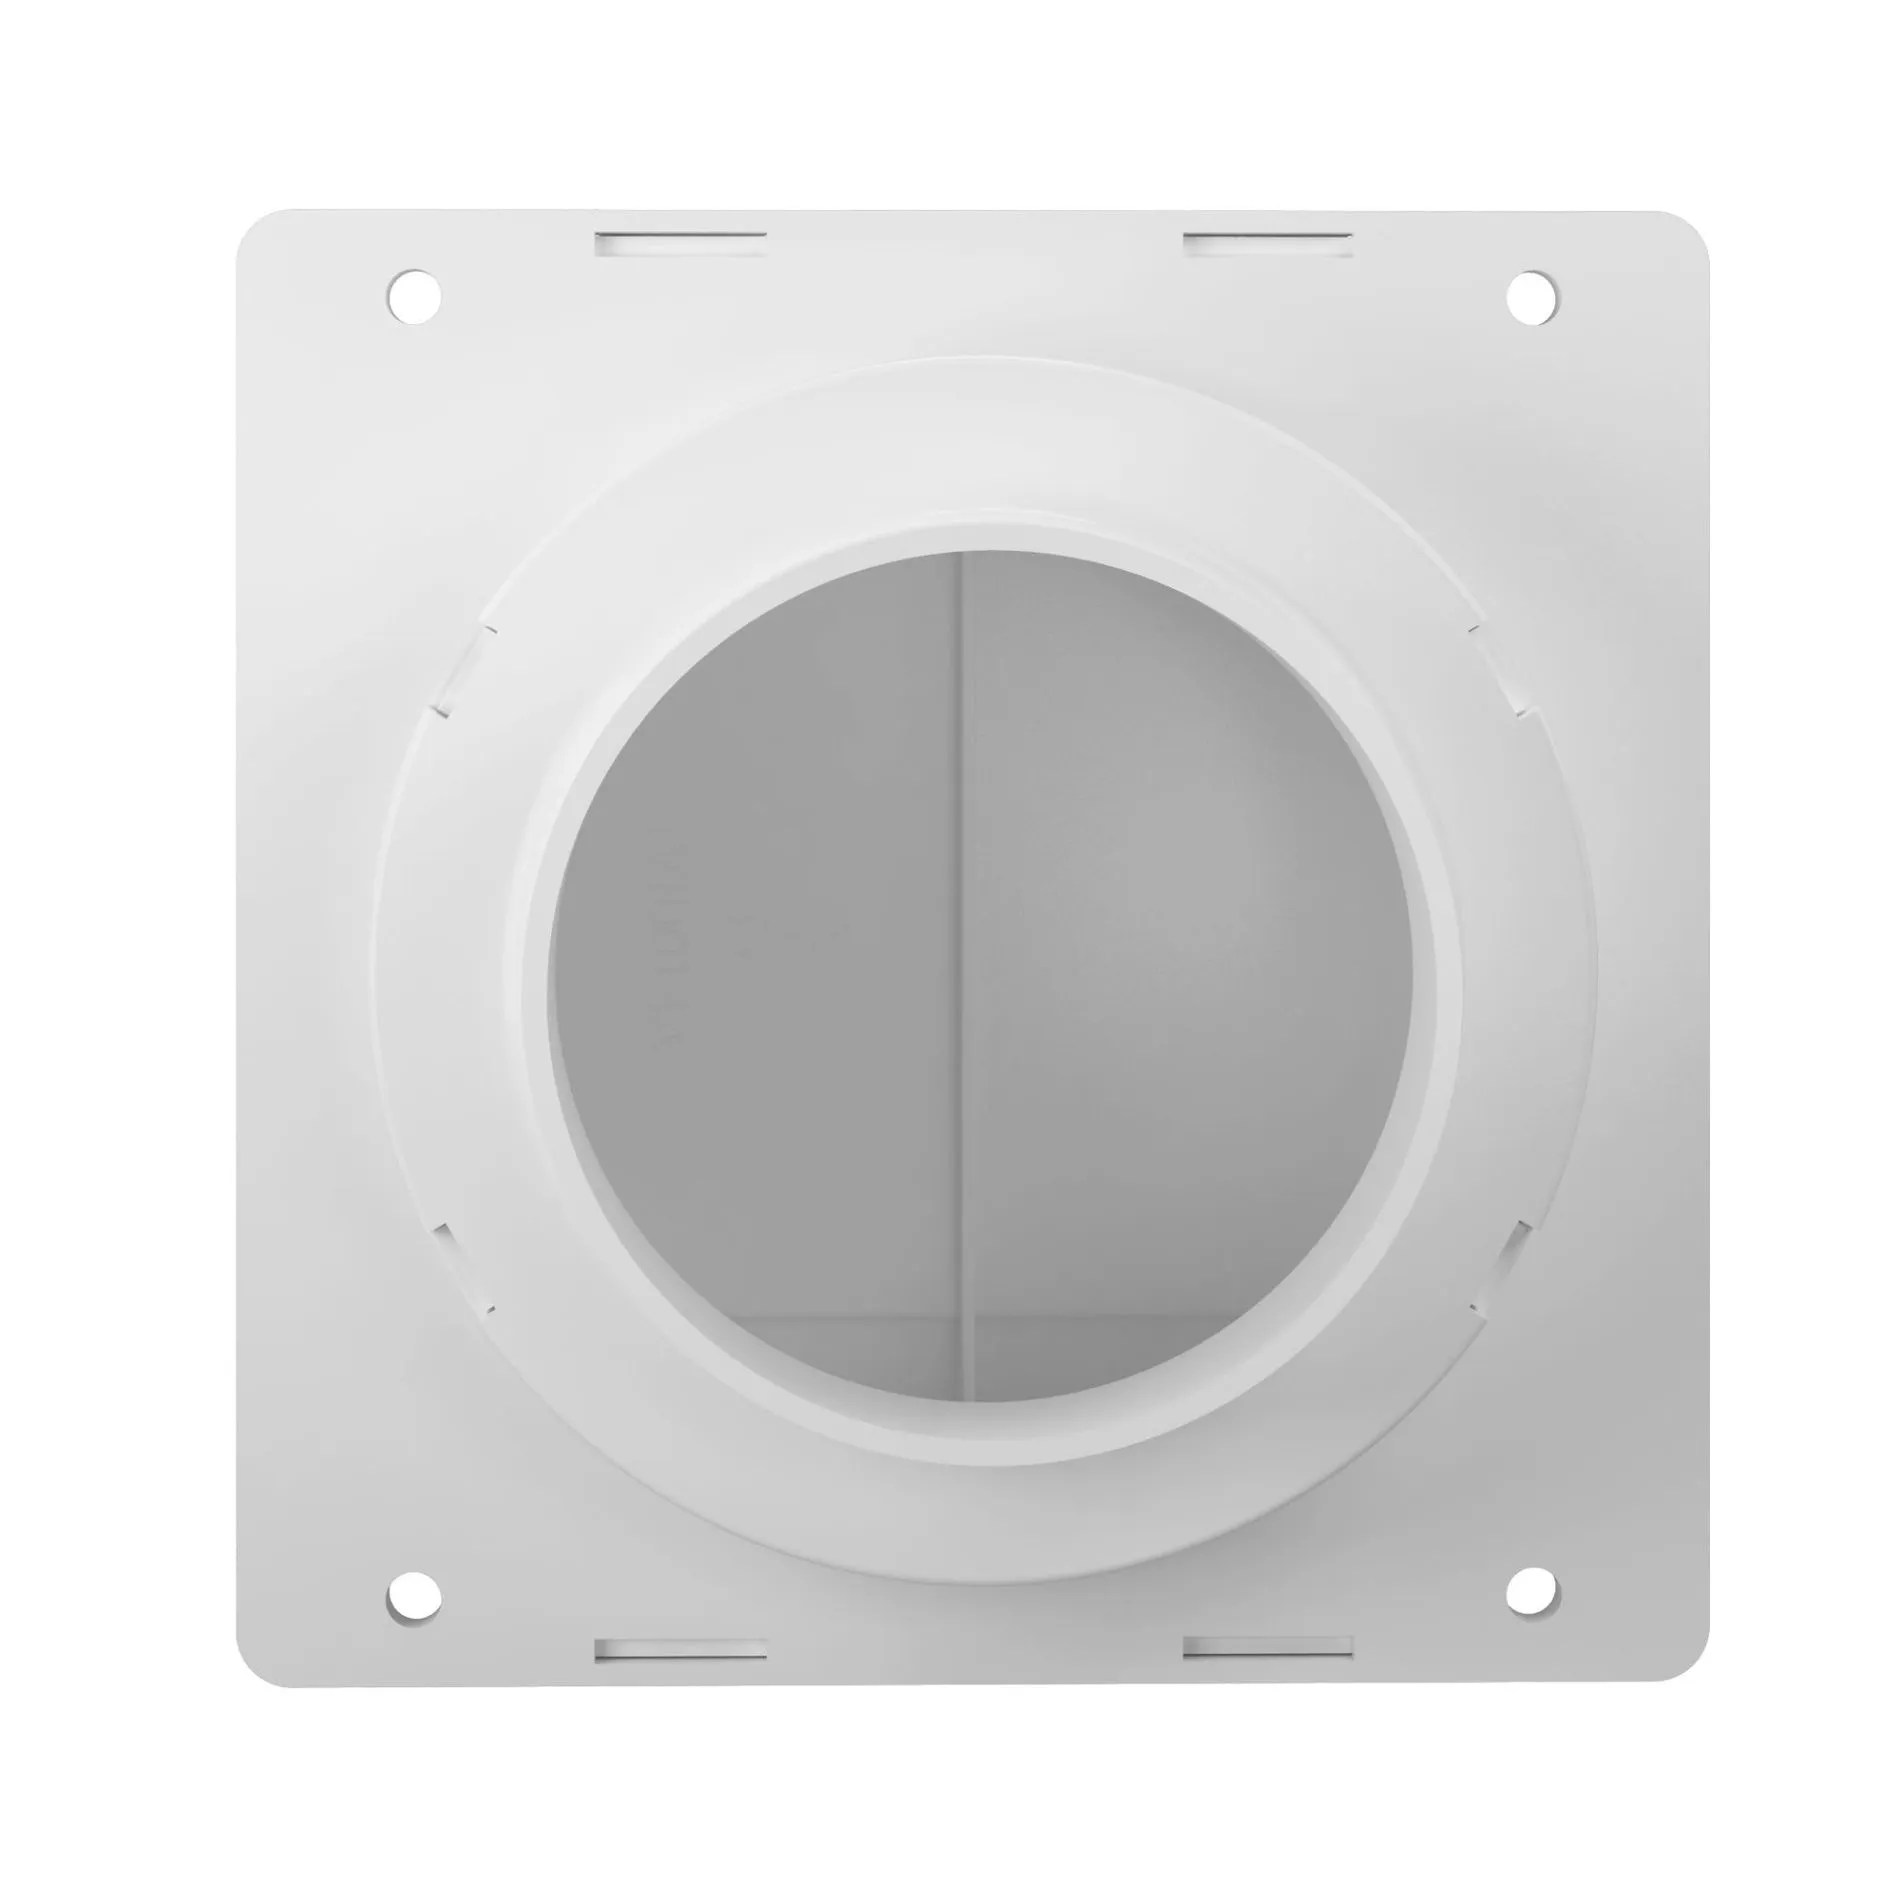 soffit exhaust vent for 3 or 4 duct